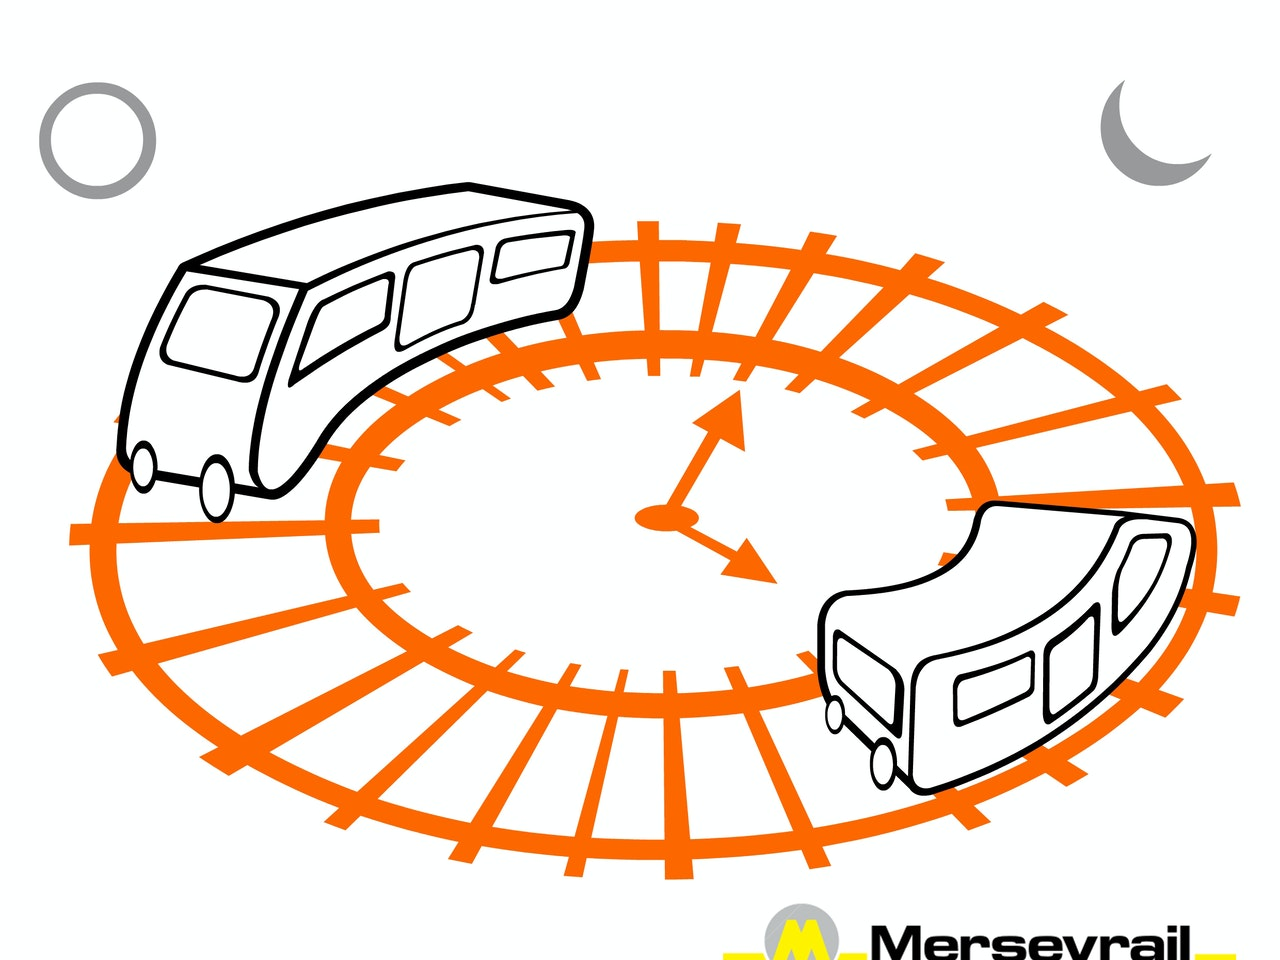 trains transport tram night and day cartoon illustration logo icon emoji linework simple basic emoticon mascot avatar